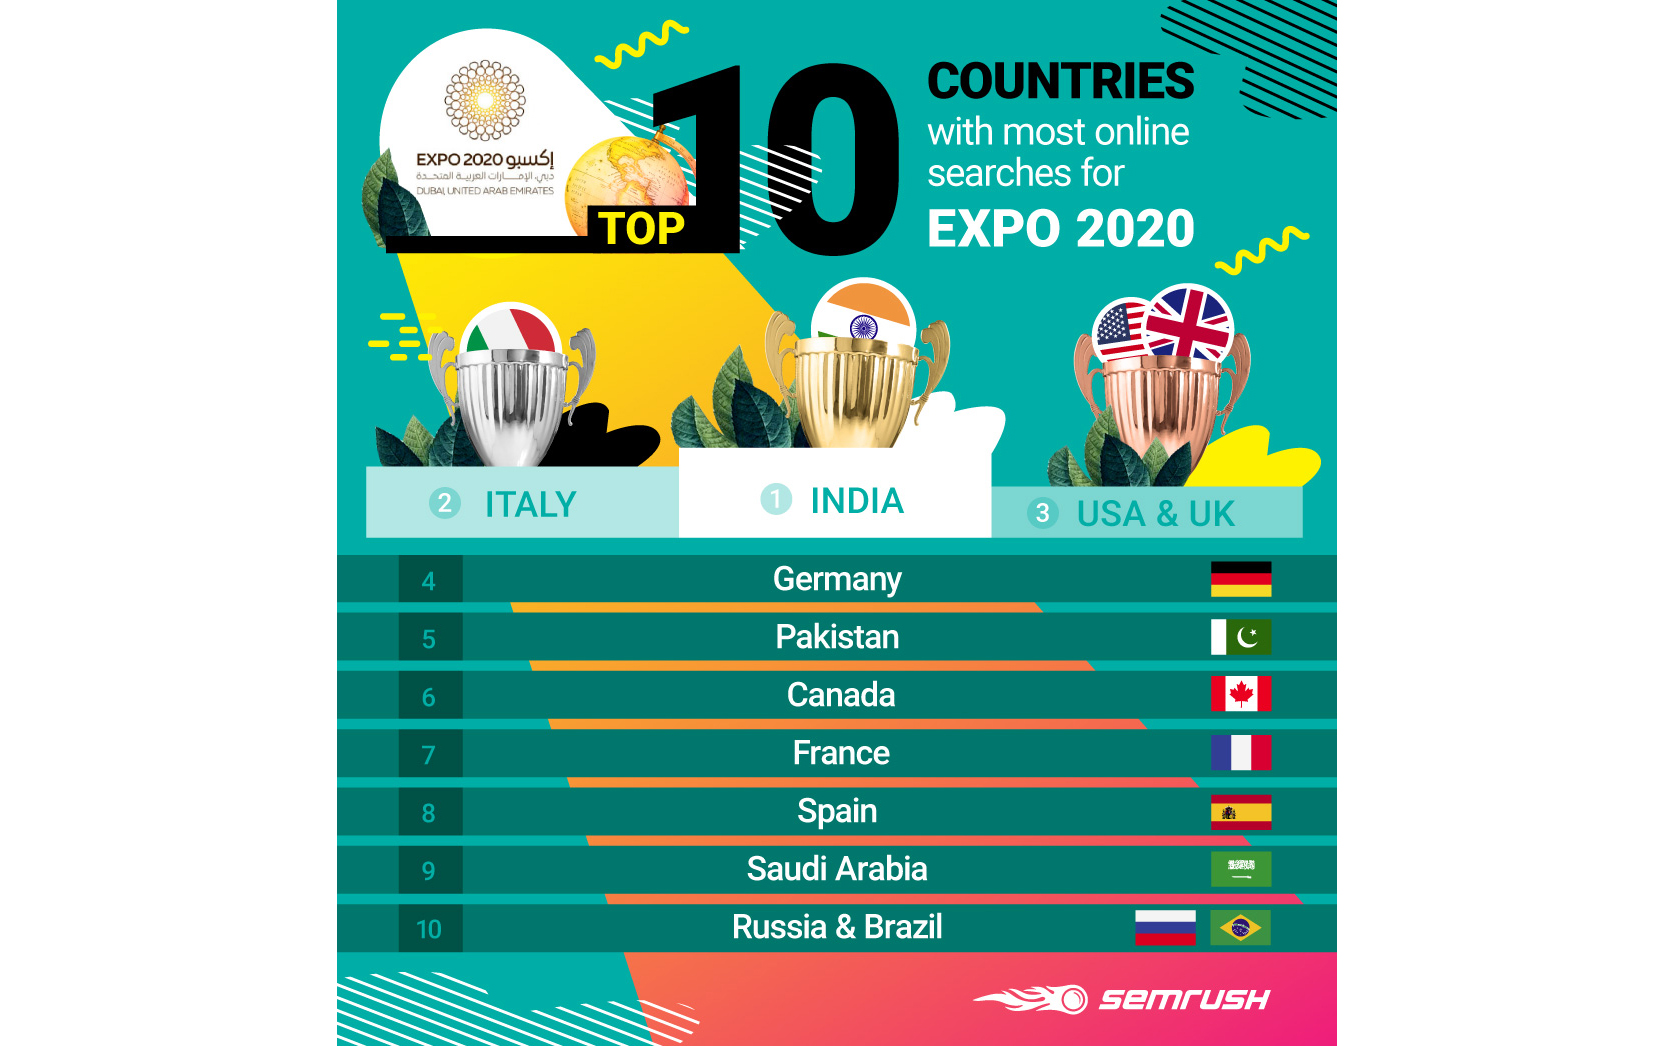 Global interest ramps up for Expo 2020